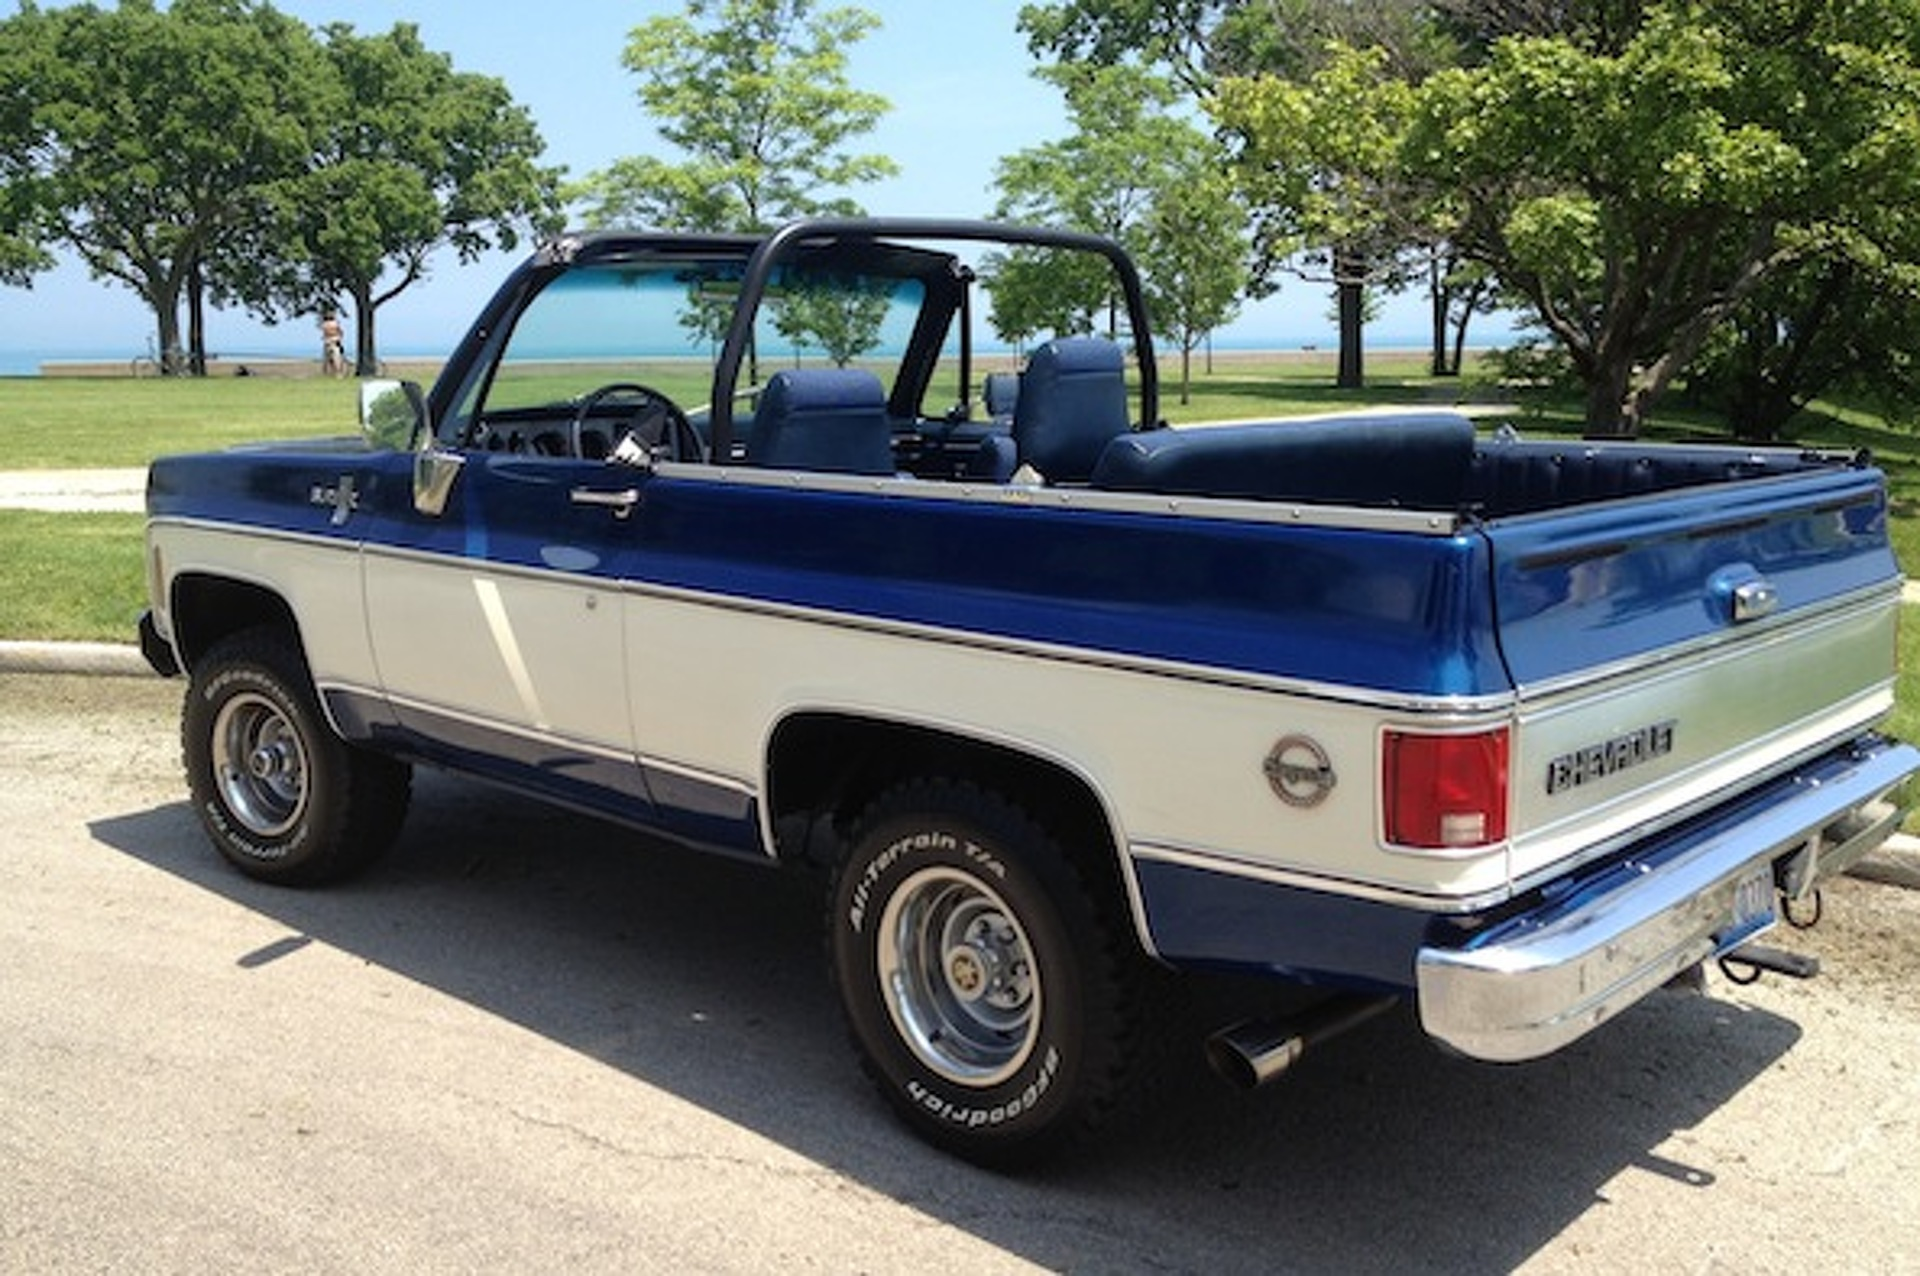 Your Ride: 1974 Chevy K5 Blazer